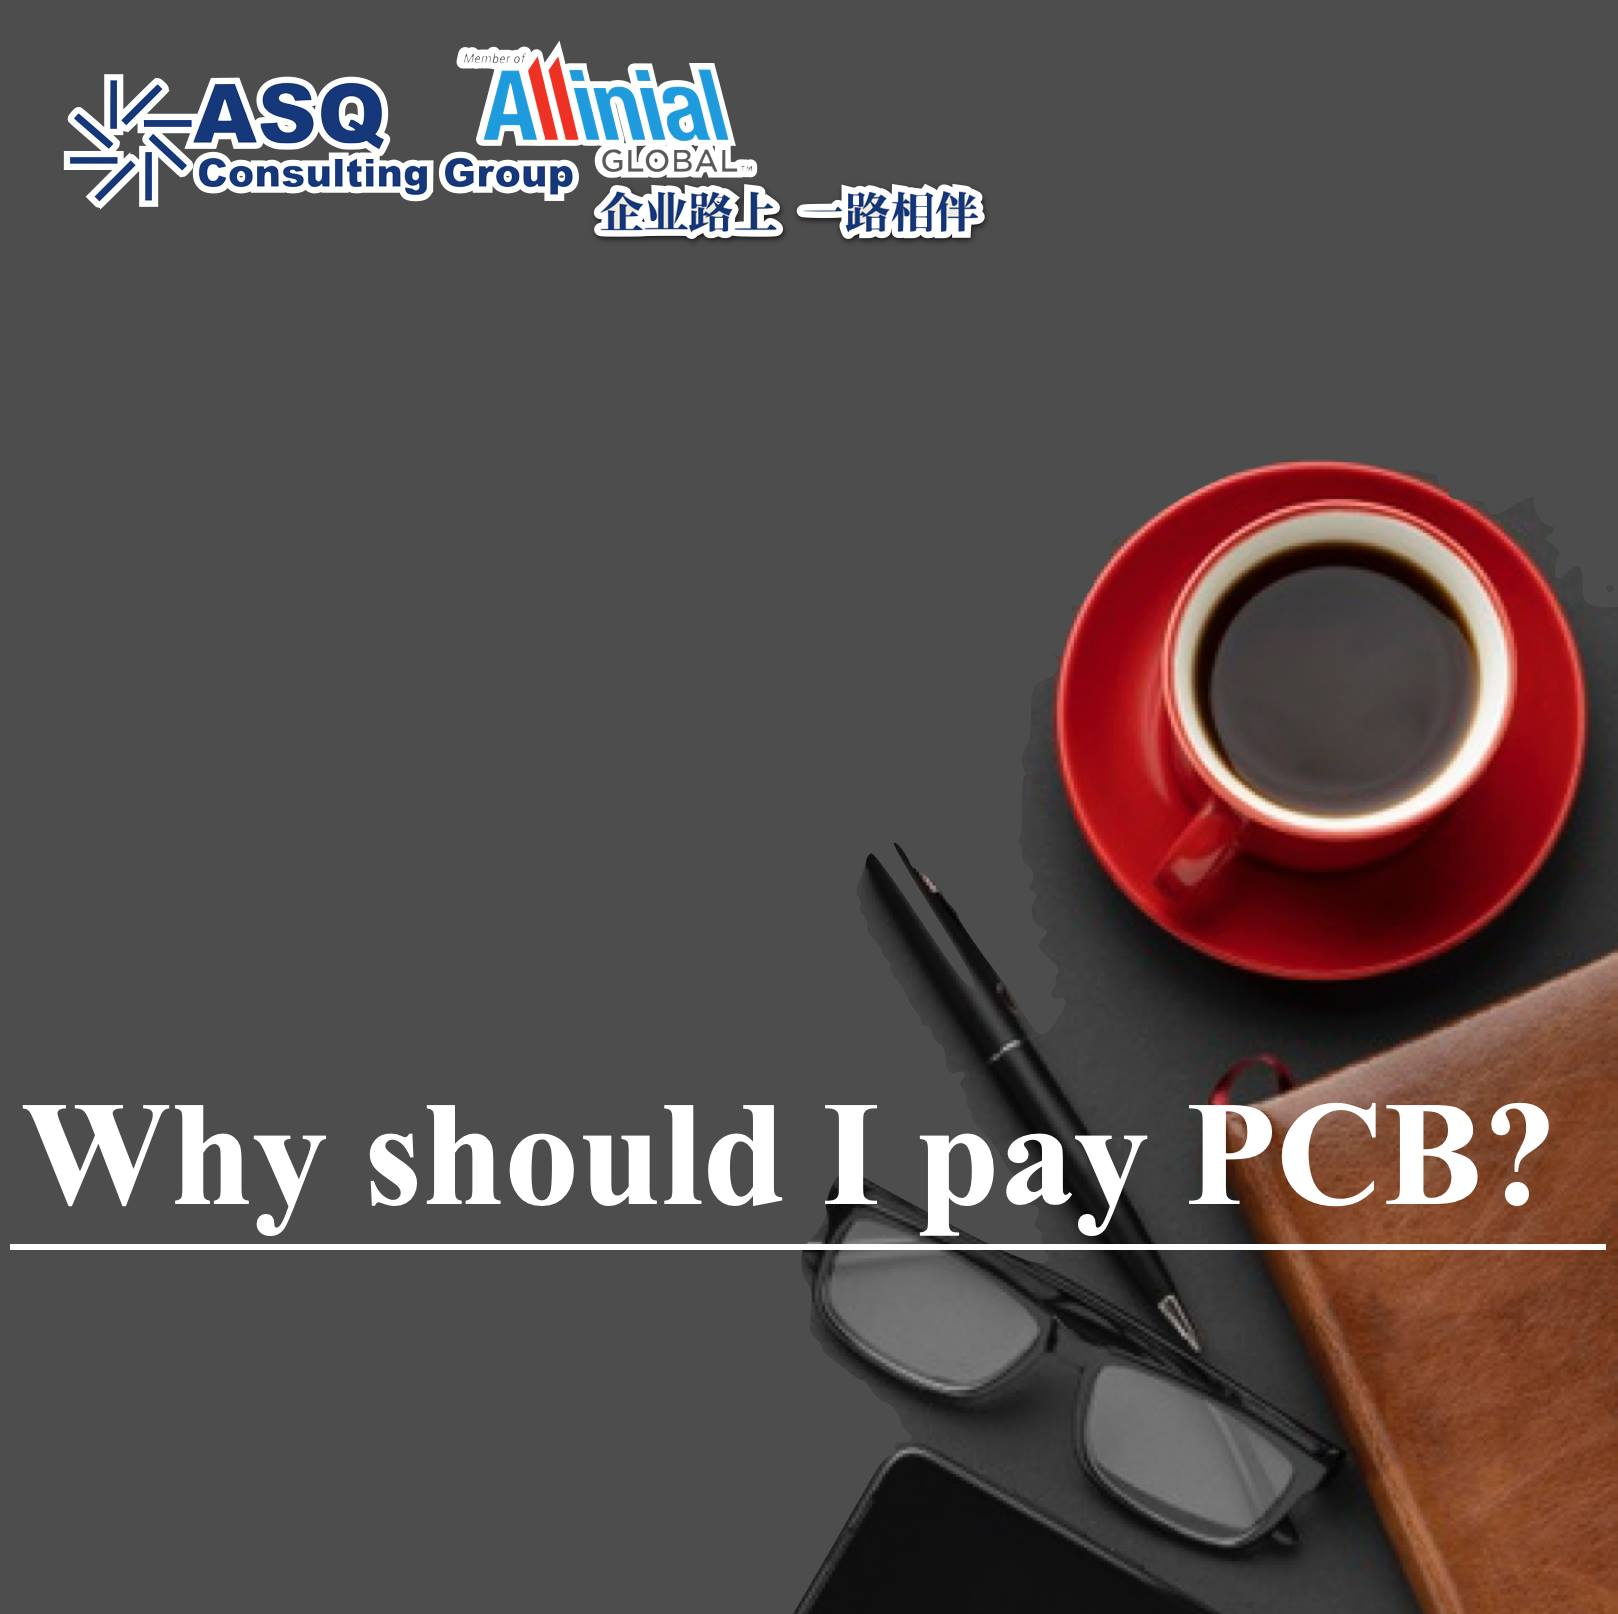 Why should I pay PCB?